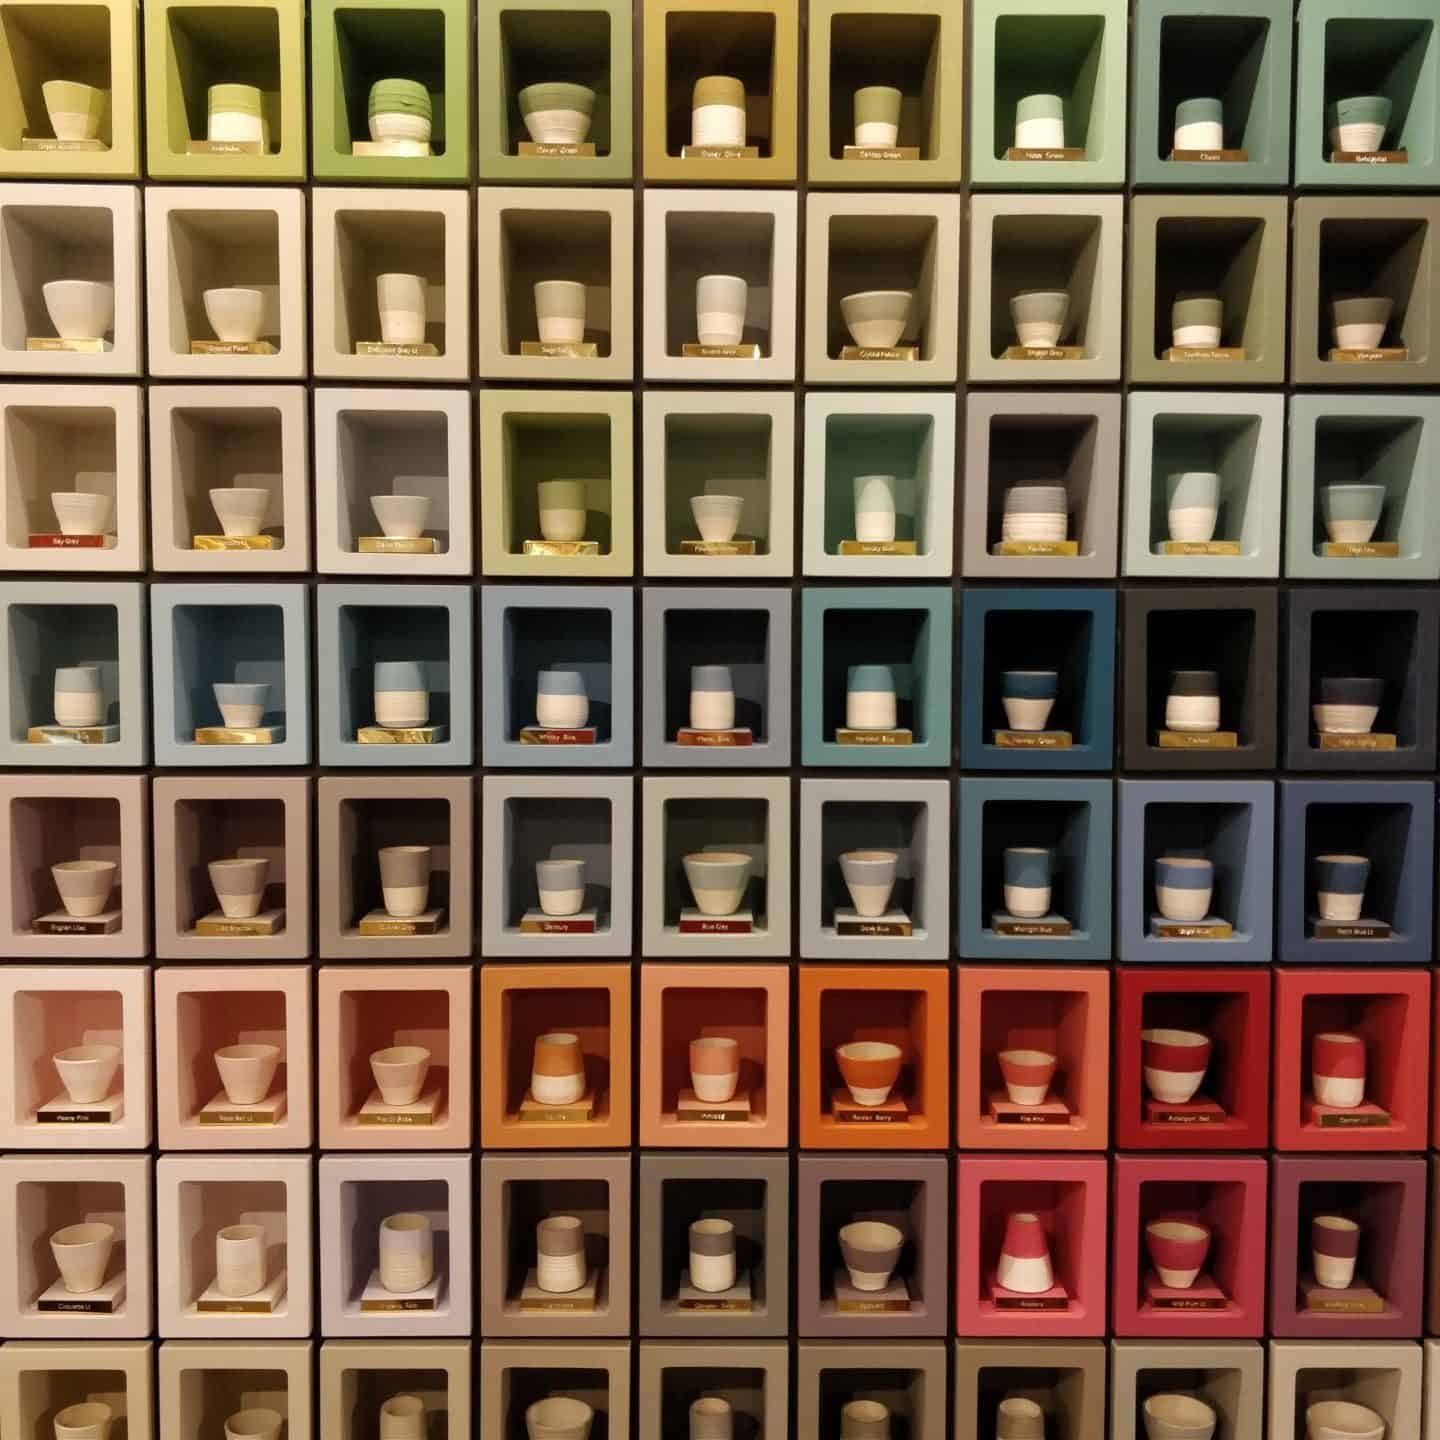 A selection of paint colours displayed in small cubes containing painted pots.